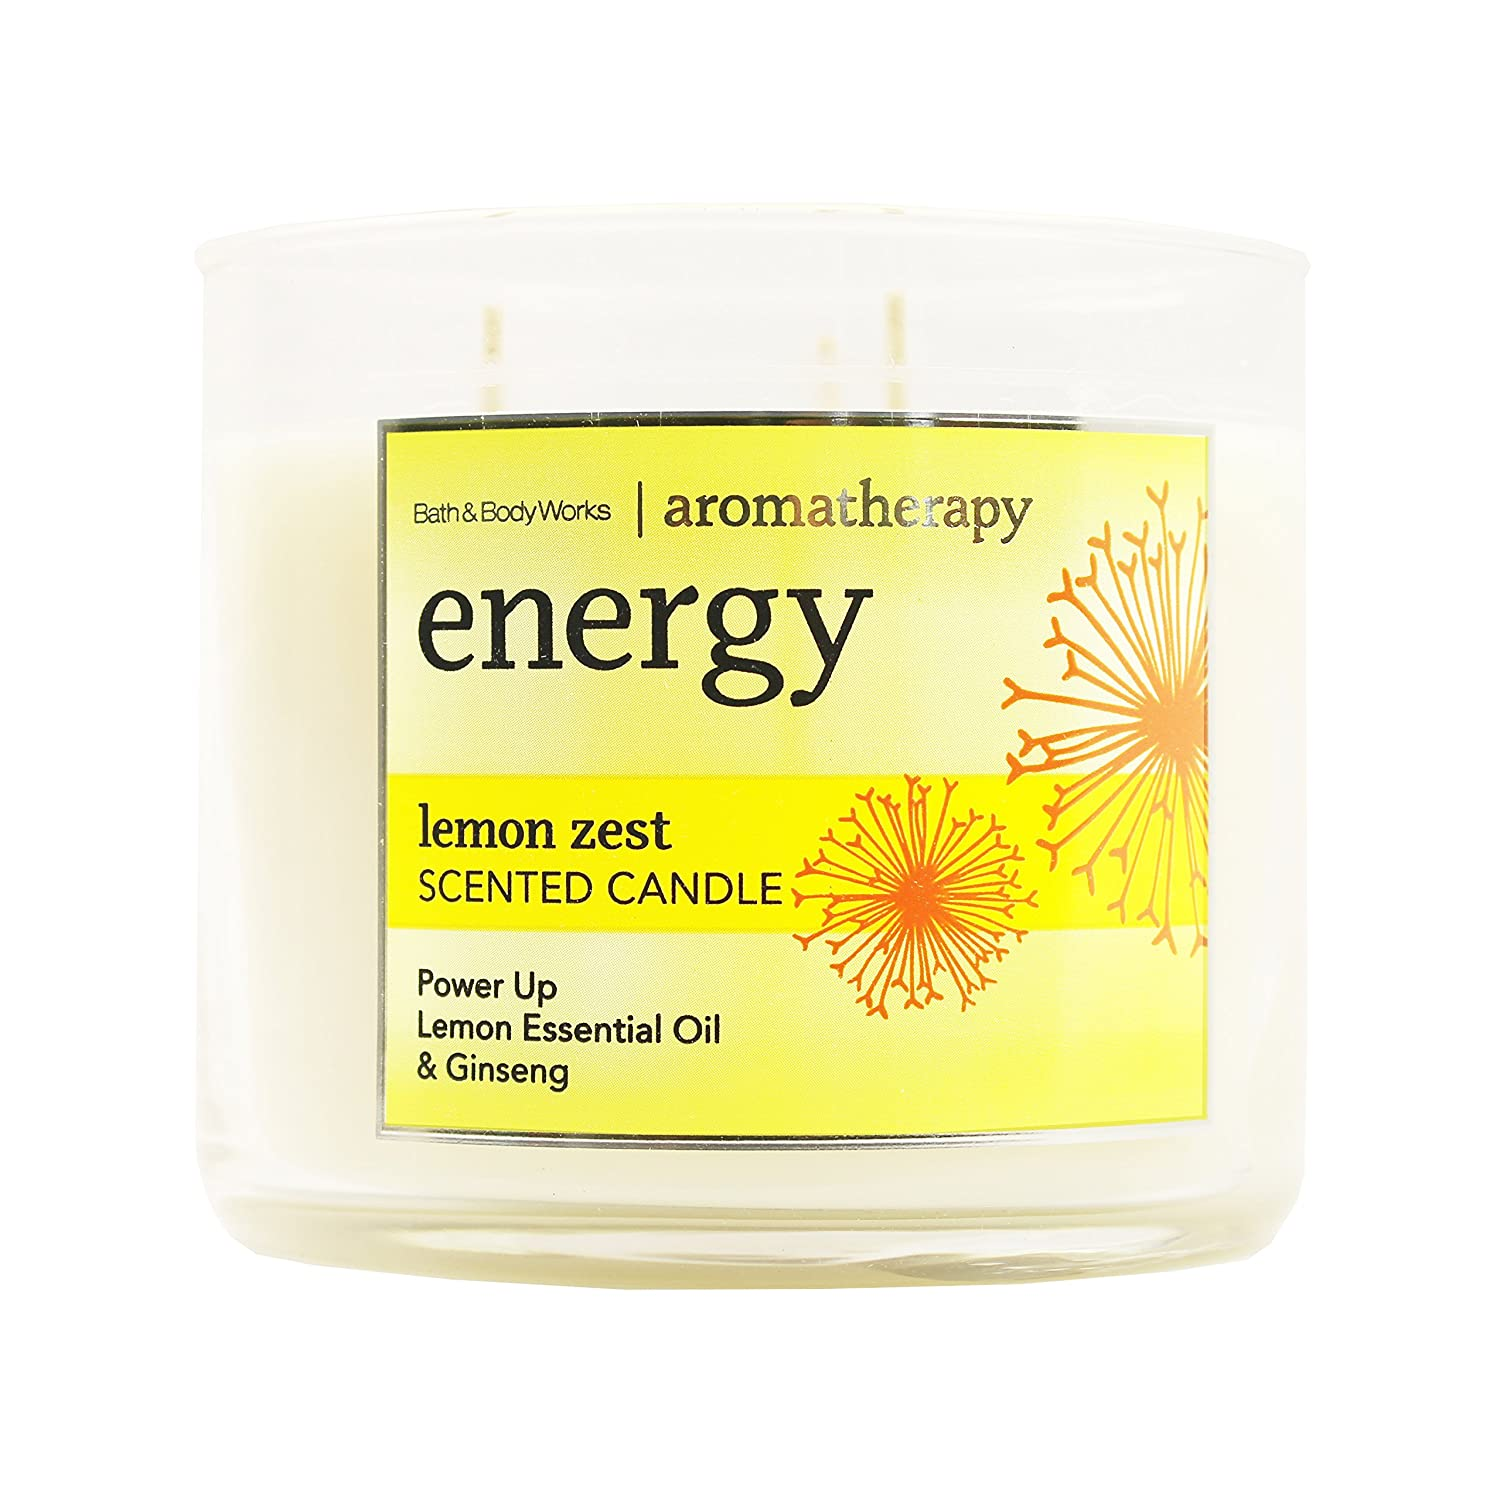 Bath Body Works 3 Wick Lemon Zest Aromatherapy Candle Energy 3 Wick 14.5 Ounce Bath and Body Works